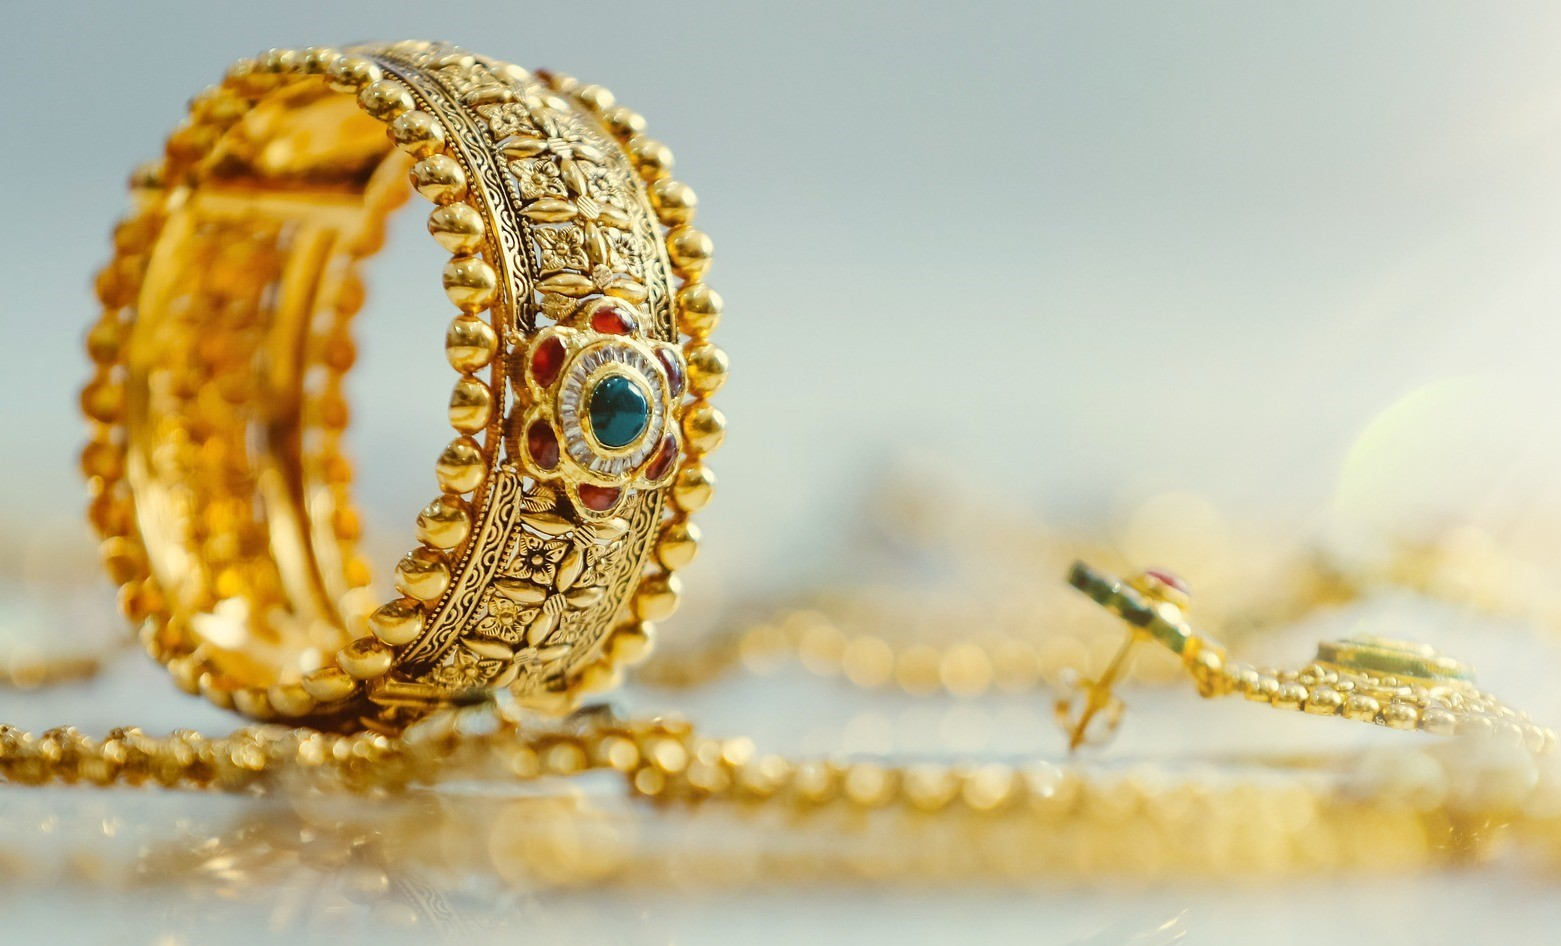 Gold jewellery is a popular draw for criminals